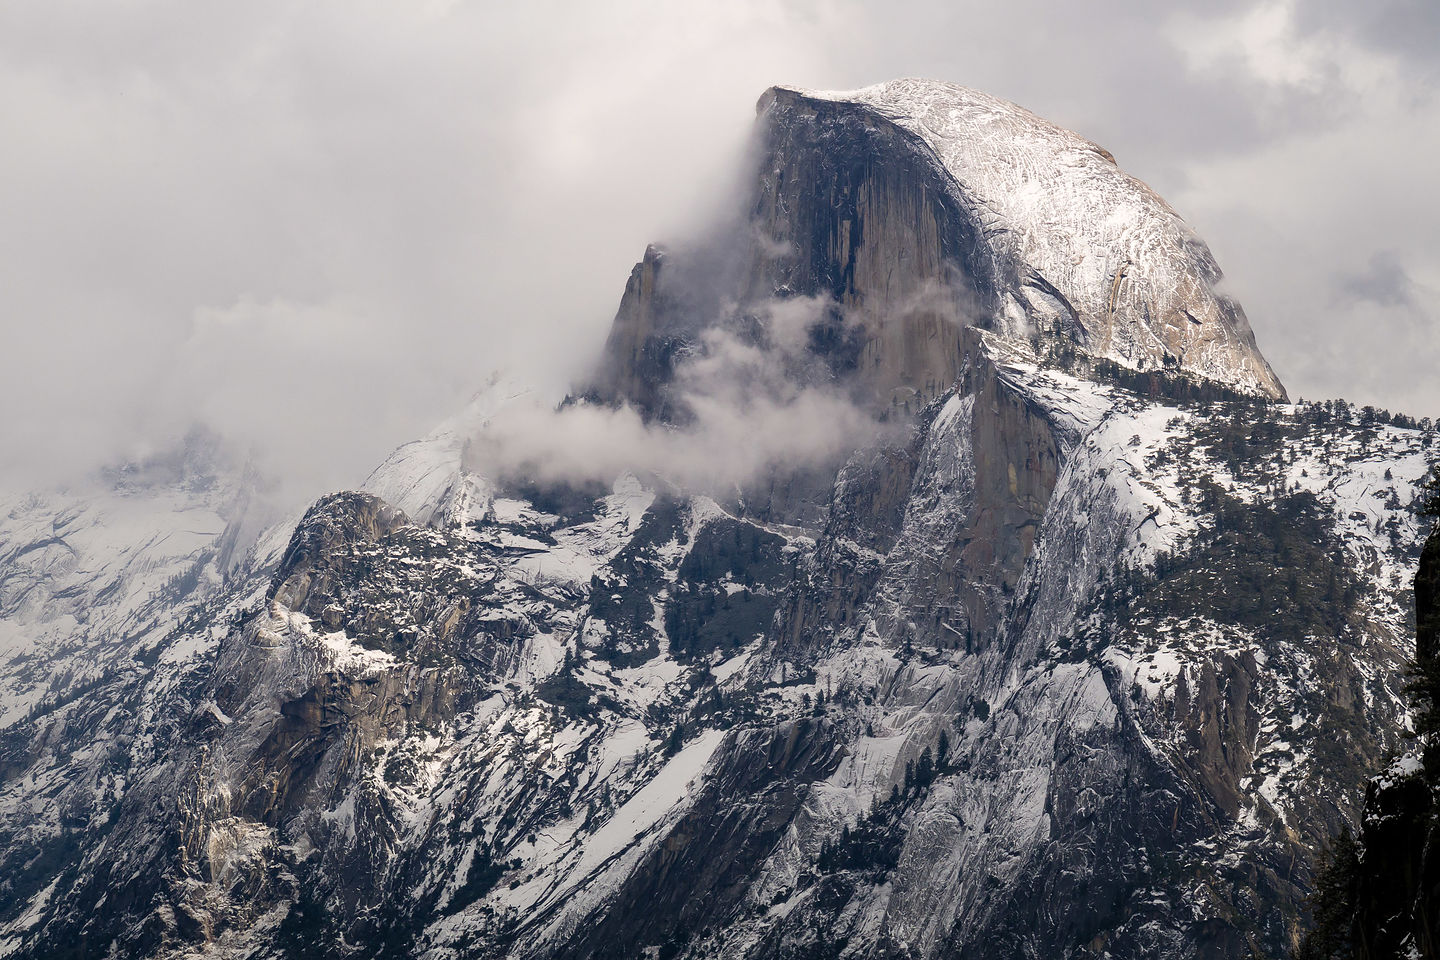 It's snowing on Half Dome!!